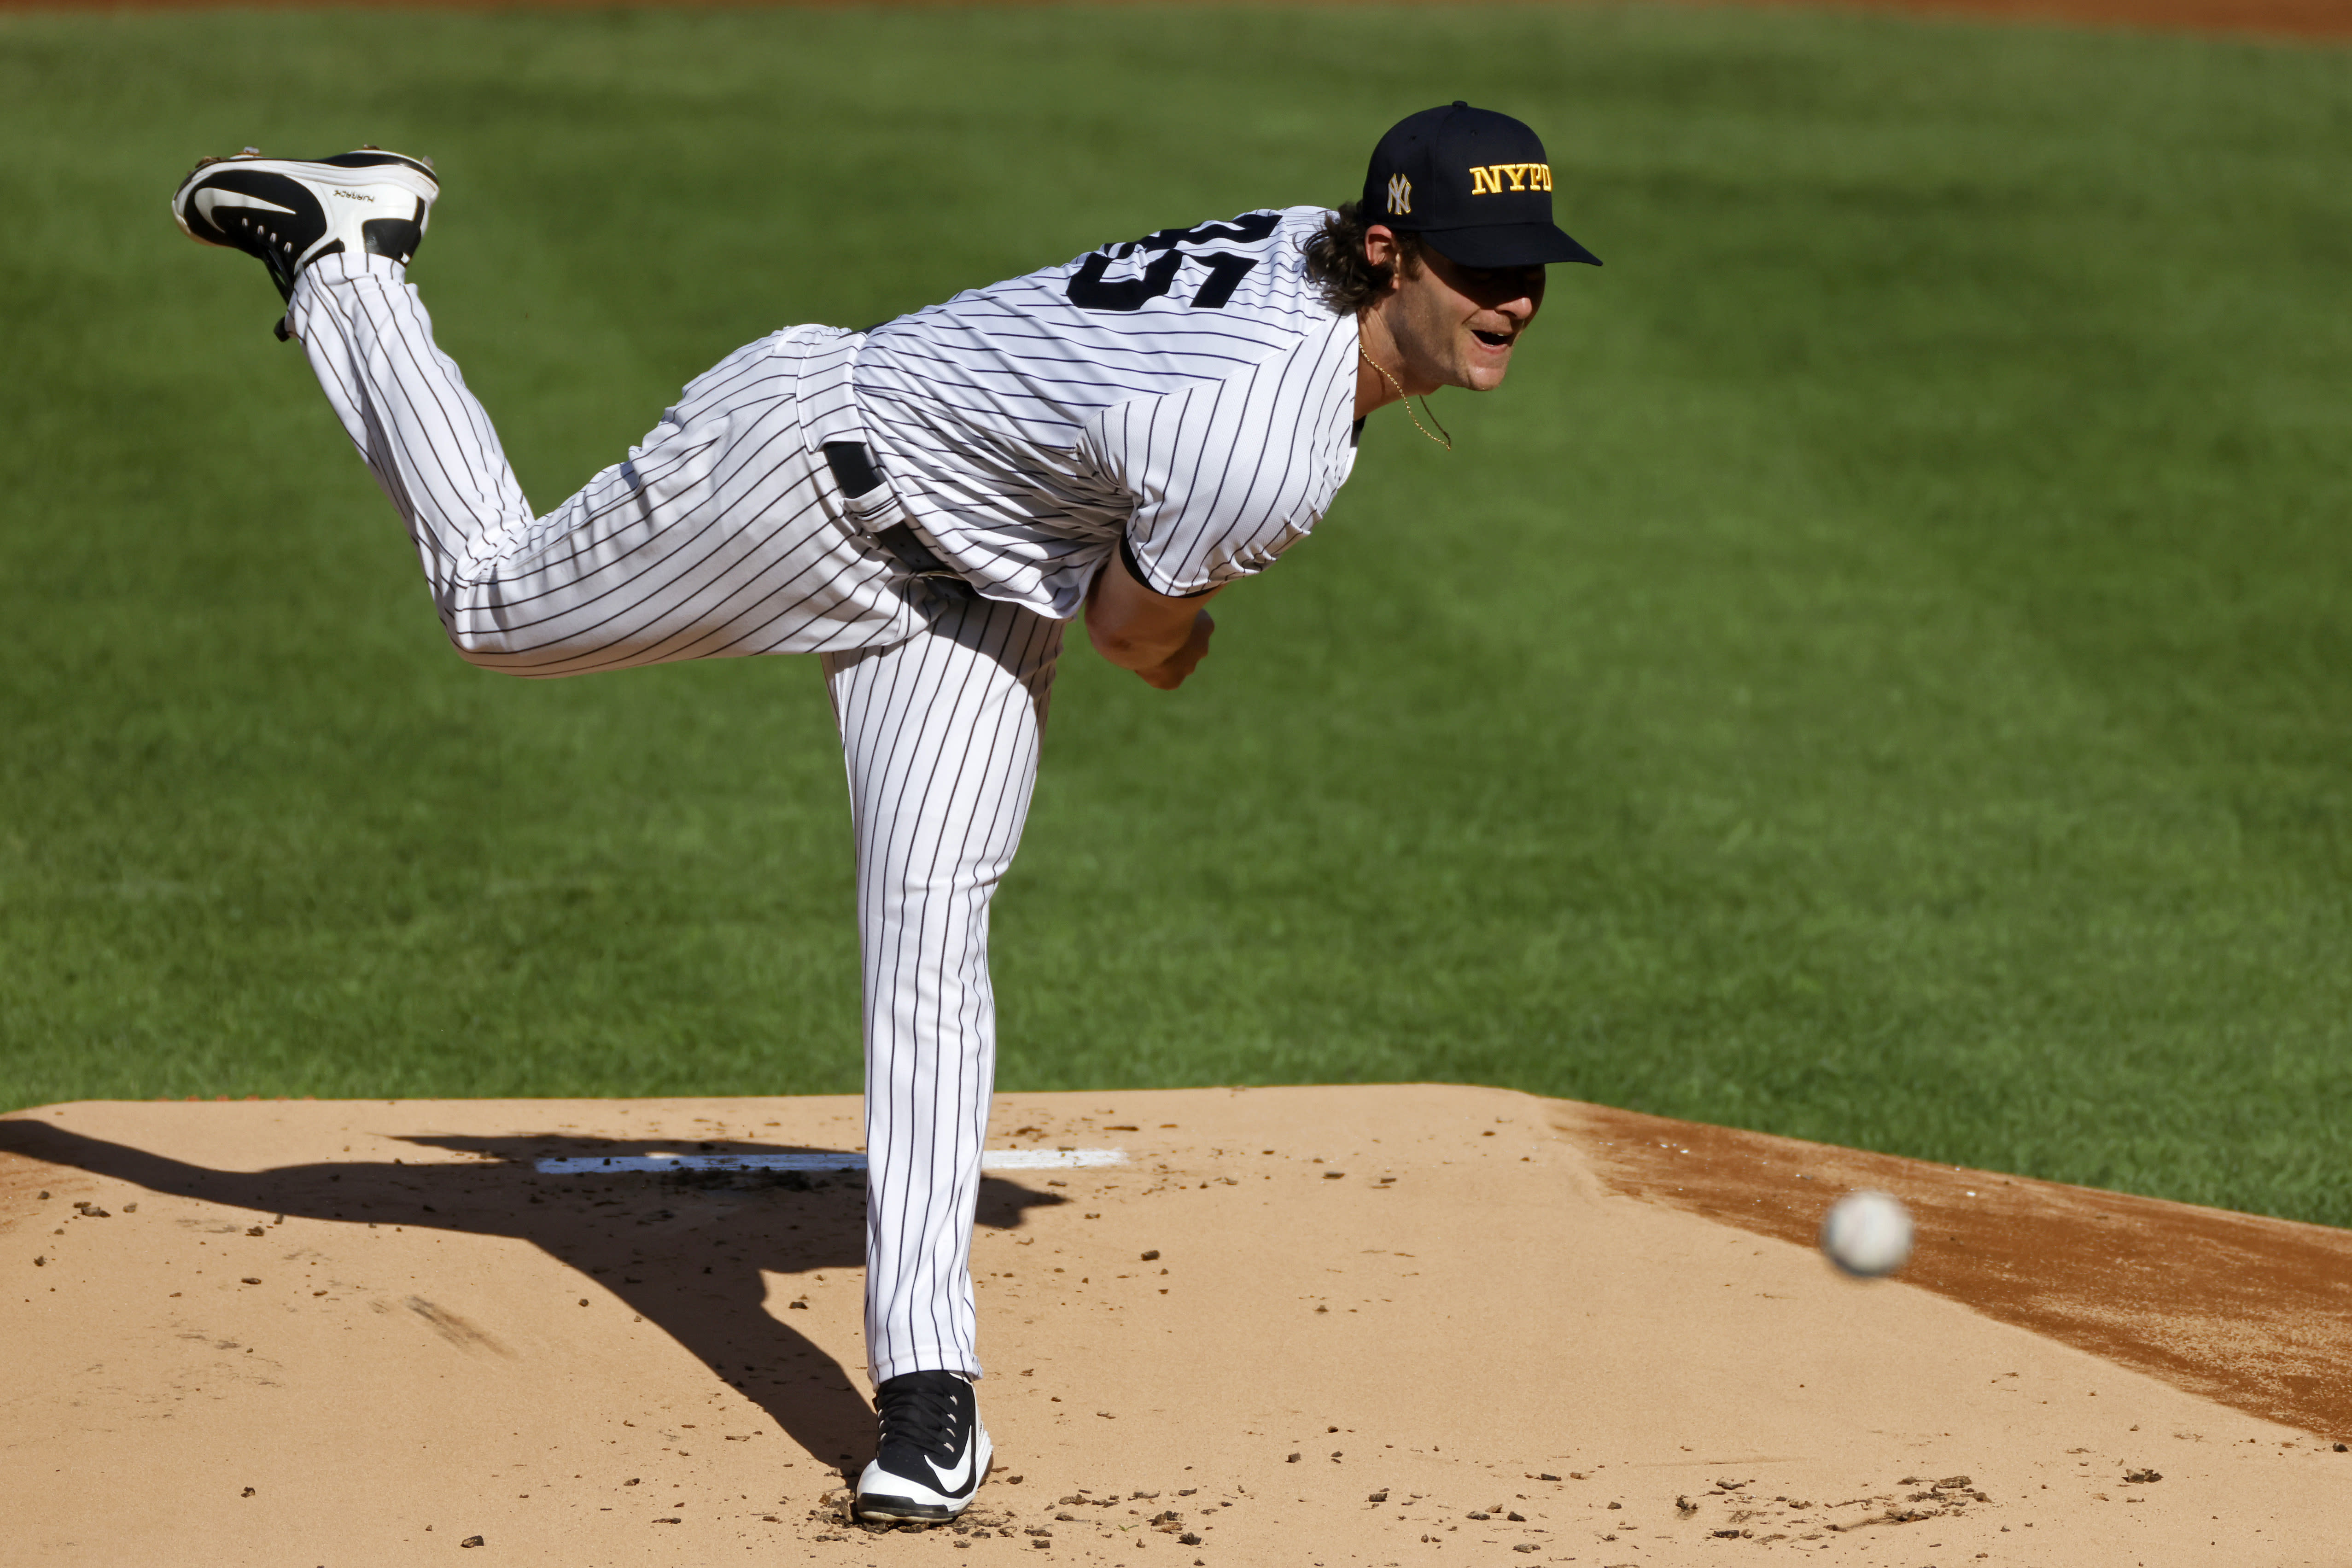 New York Yankees pitcher Gerrit Cole throws during the first inning of the first baseball game of the team's doubleheader against the Baltimore Orioles, Friday, Sept. 11, 2020, in New York. The Yankees won 6-0. (AP Photo/Adam Hunger)